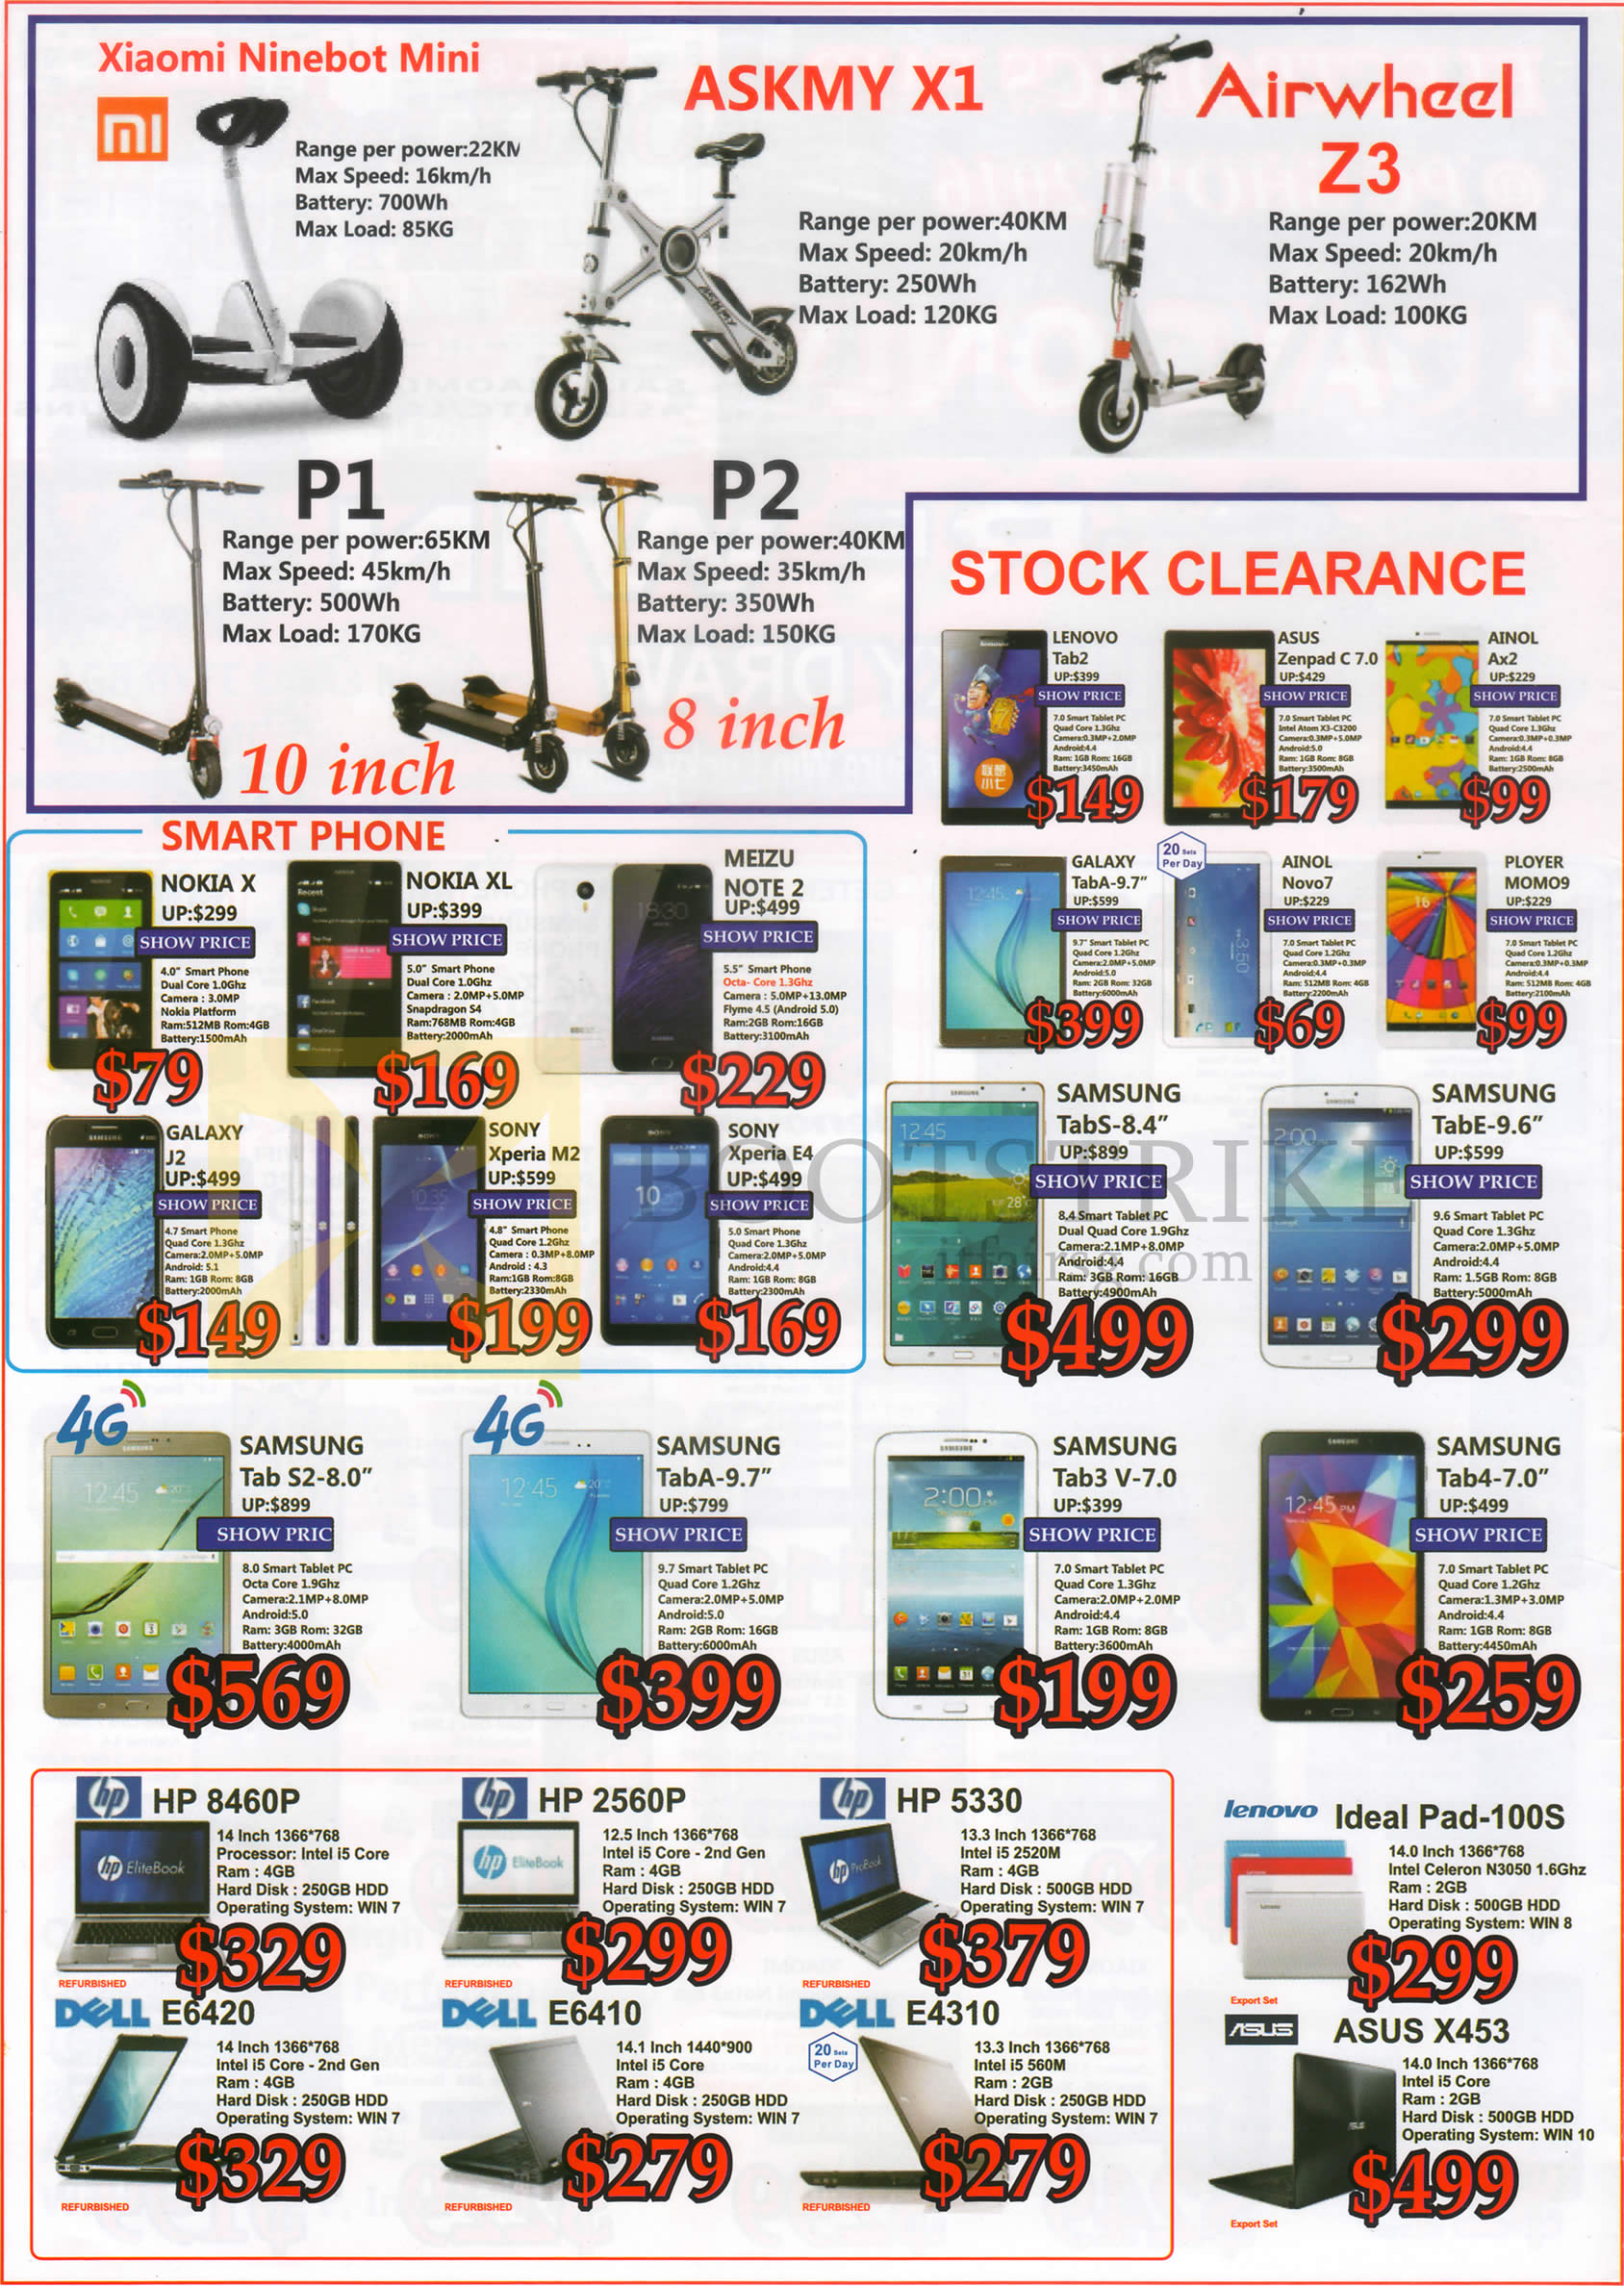 PC SHOW 2016 price list image brochure of SGVideoPro E-Scooters Smartphones Tablets Notebooks Xiaomi, ASKMY, Airwheel, P1, P2, Lenovo, Asus, Ainol, Galaxy, Ployer, Samsung, Meizu, Sony, Nokia, Dell, HP